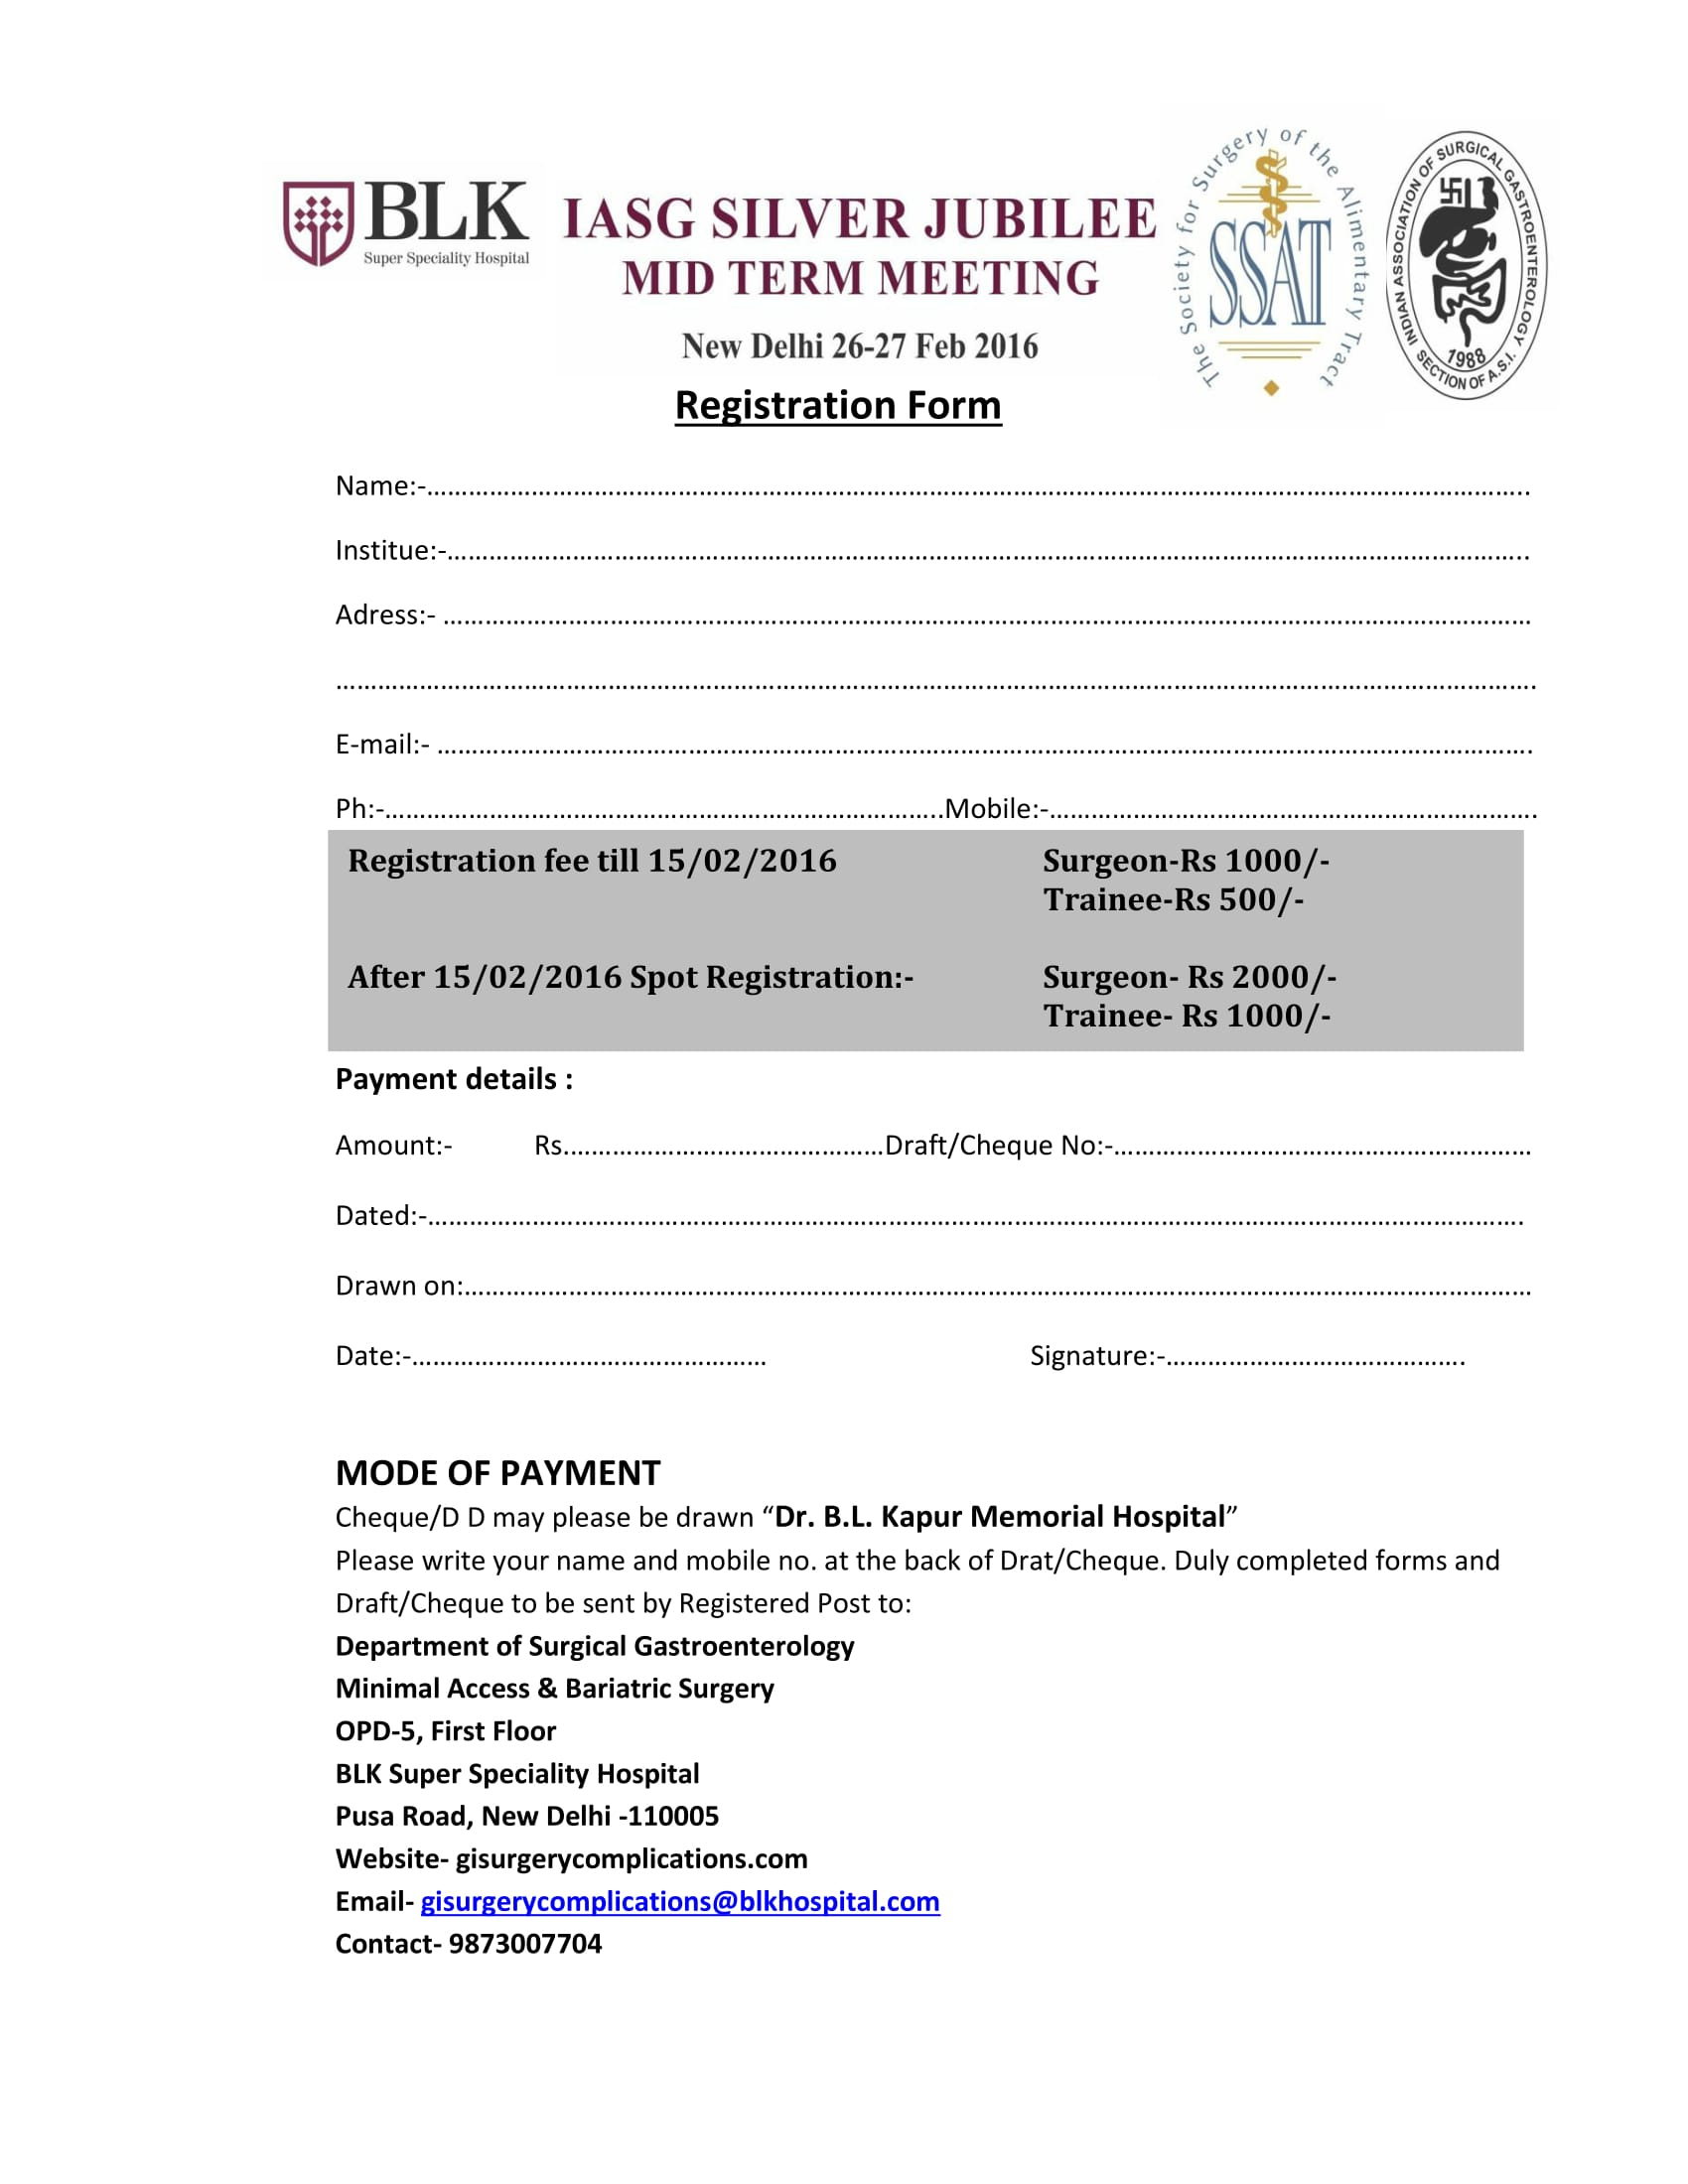 hospital meeting registration form 1